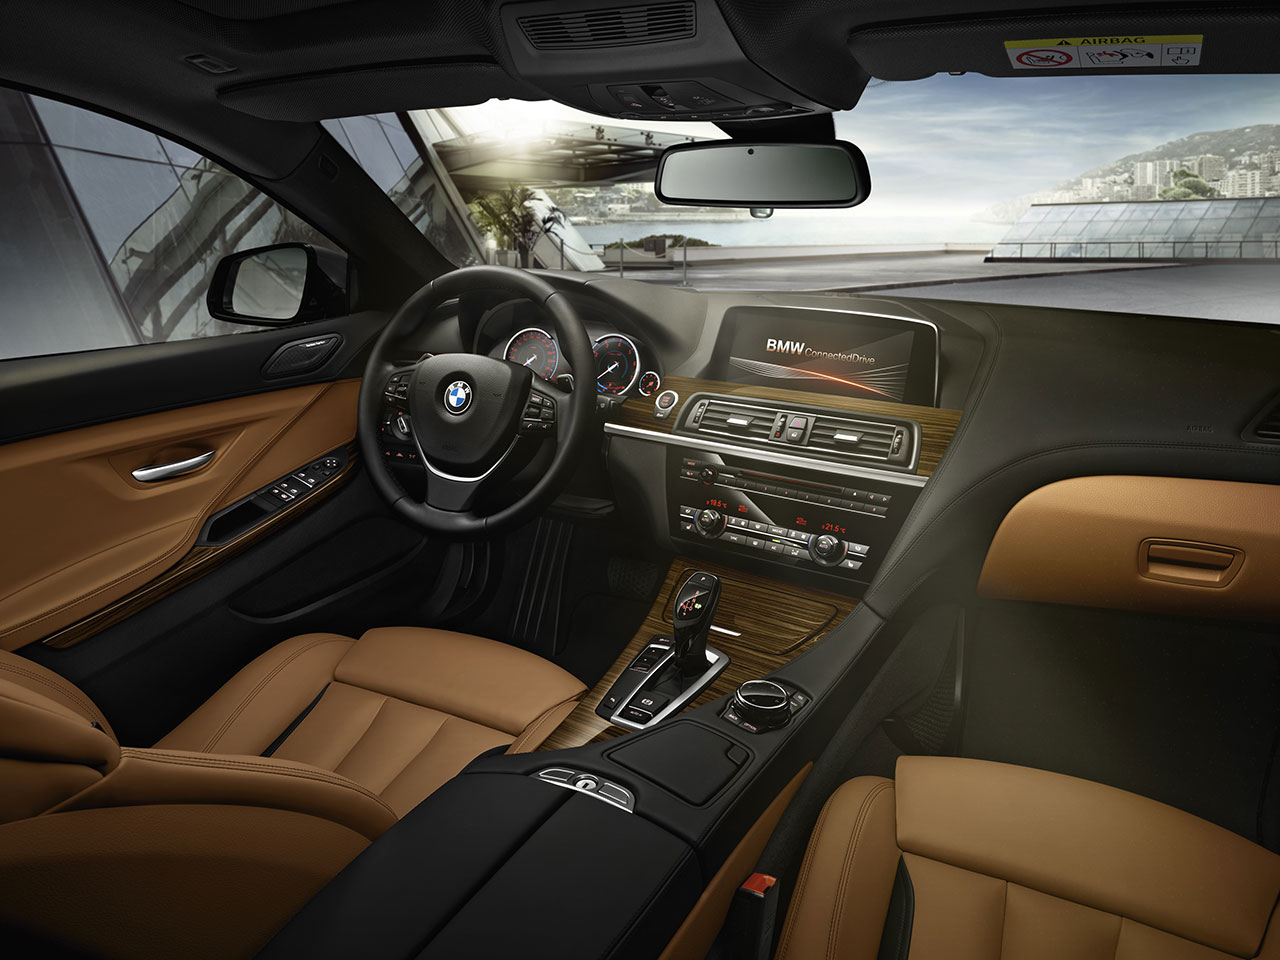 BMW 6 Series interior